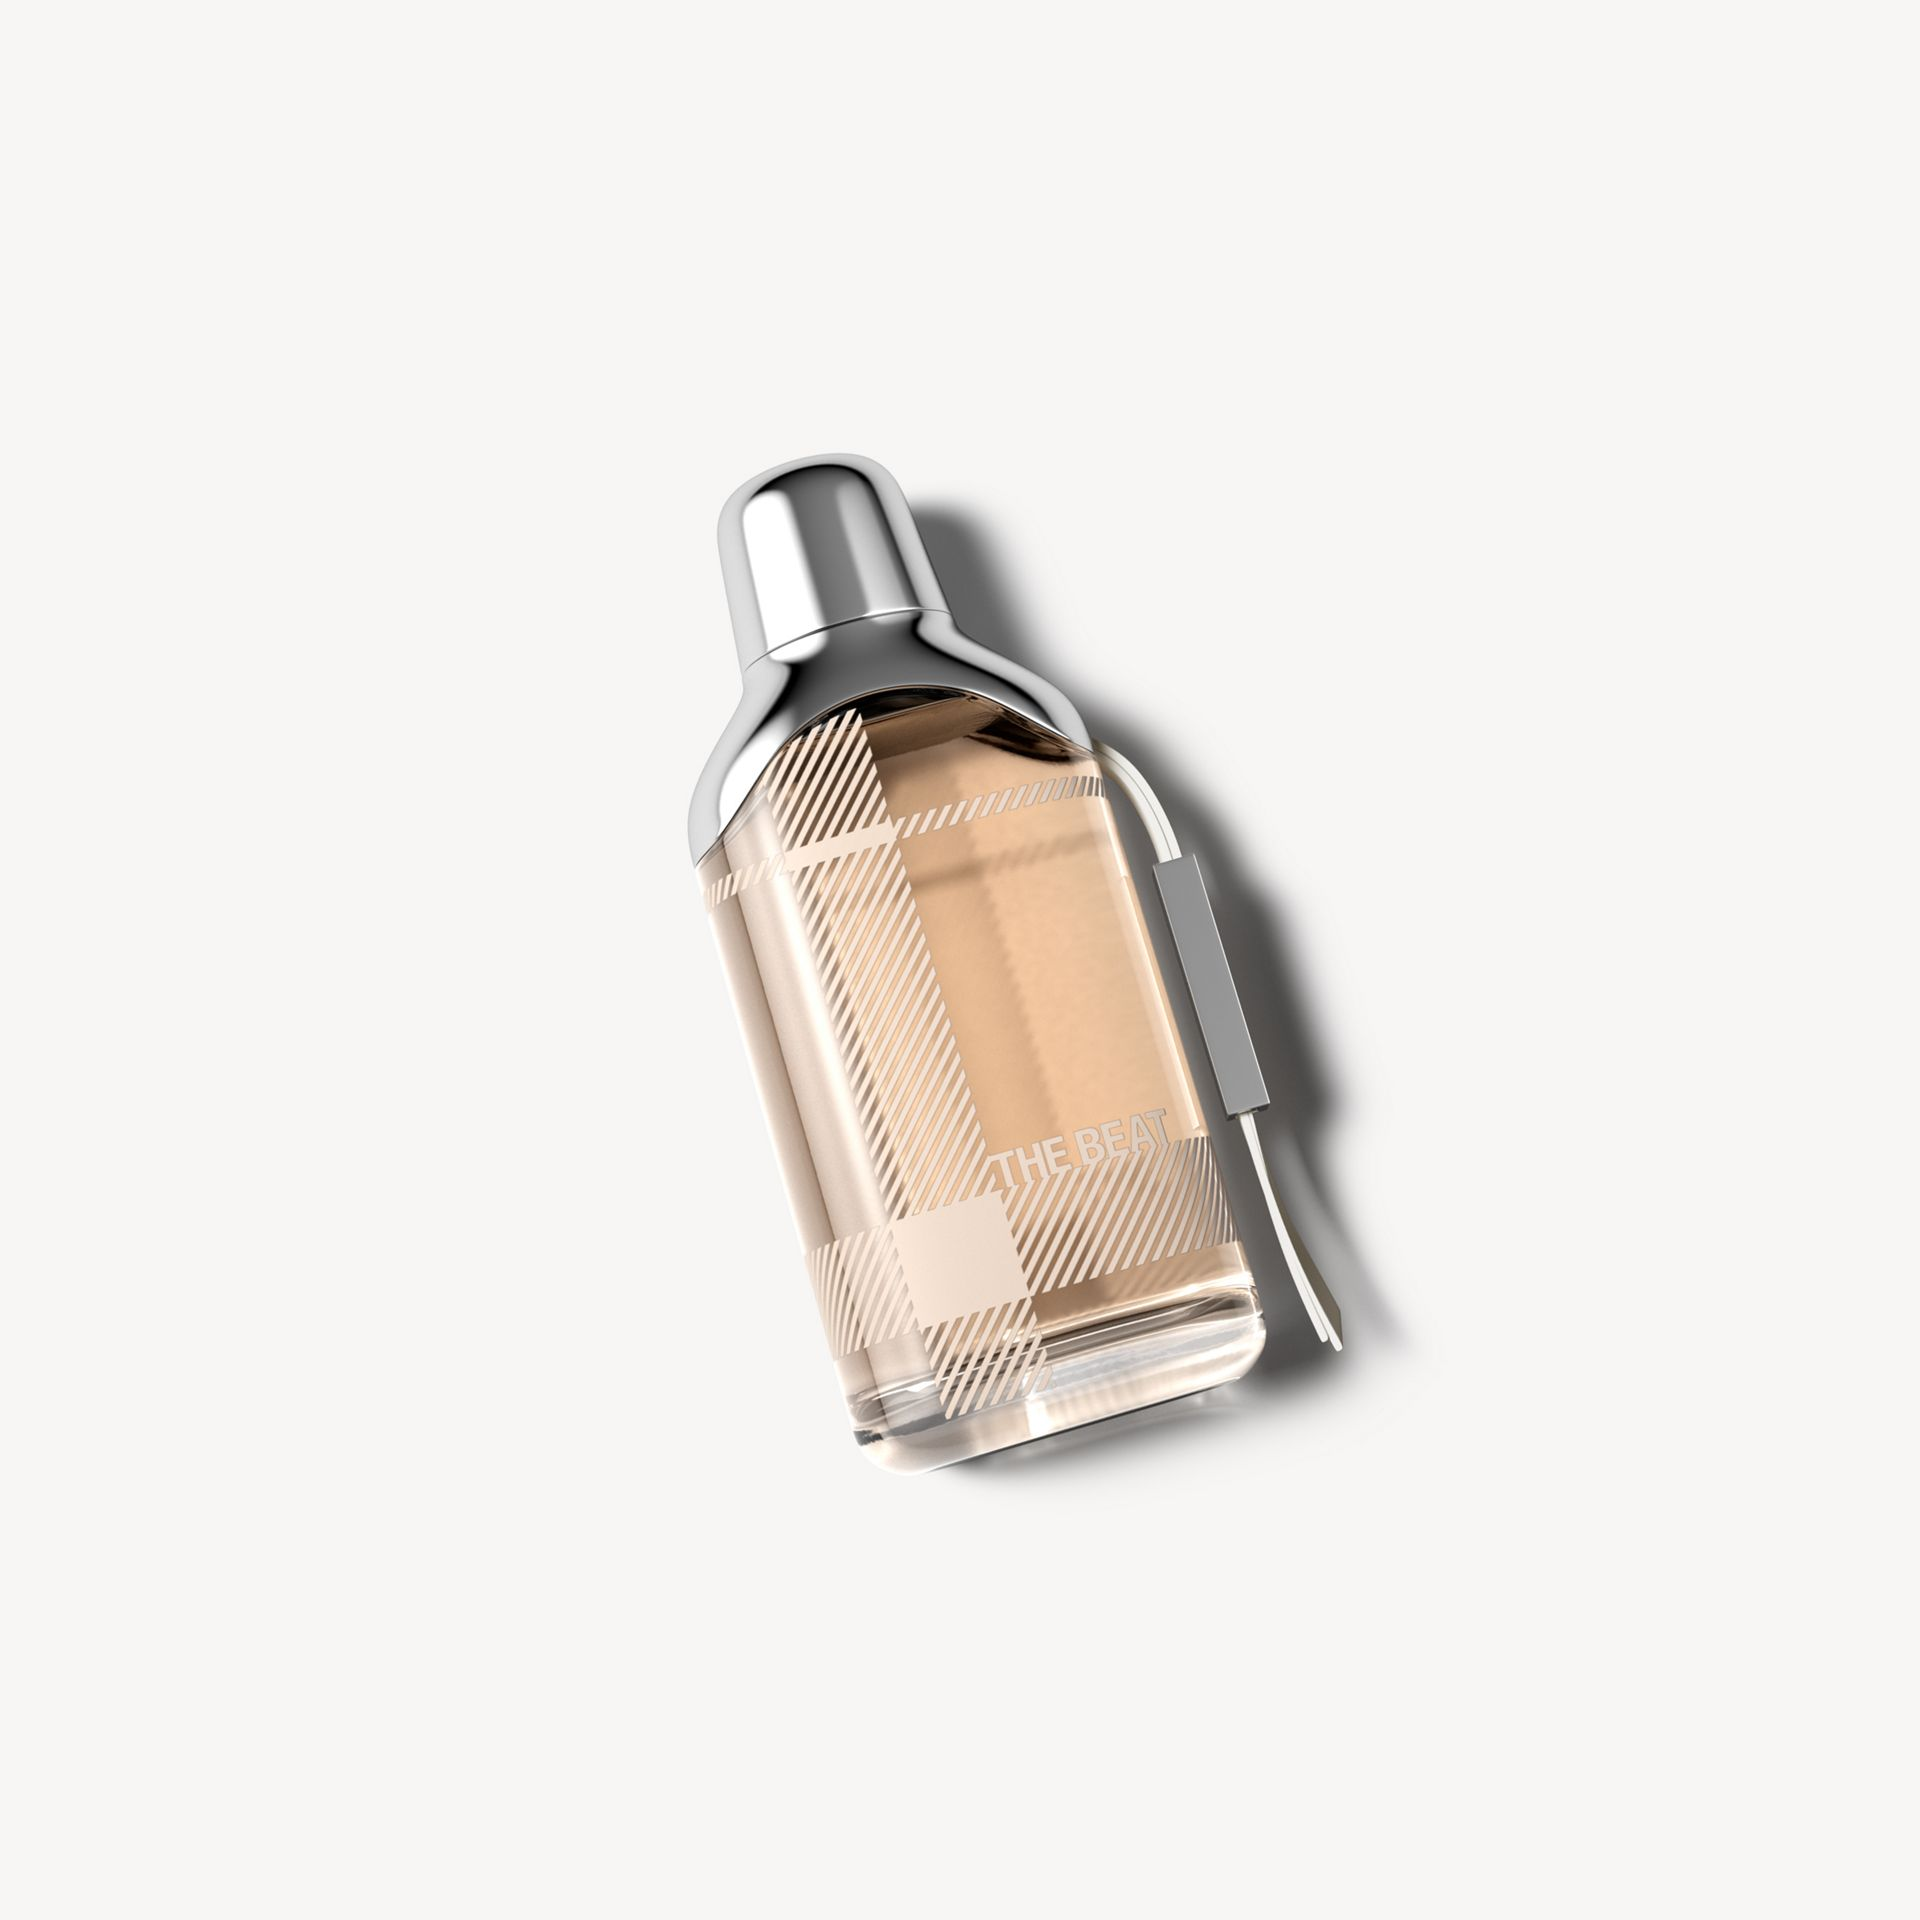 Burberry The Beat Eau de Parfum 50 ml - Donna | Burberry - immagine della galleria 1